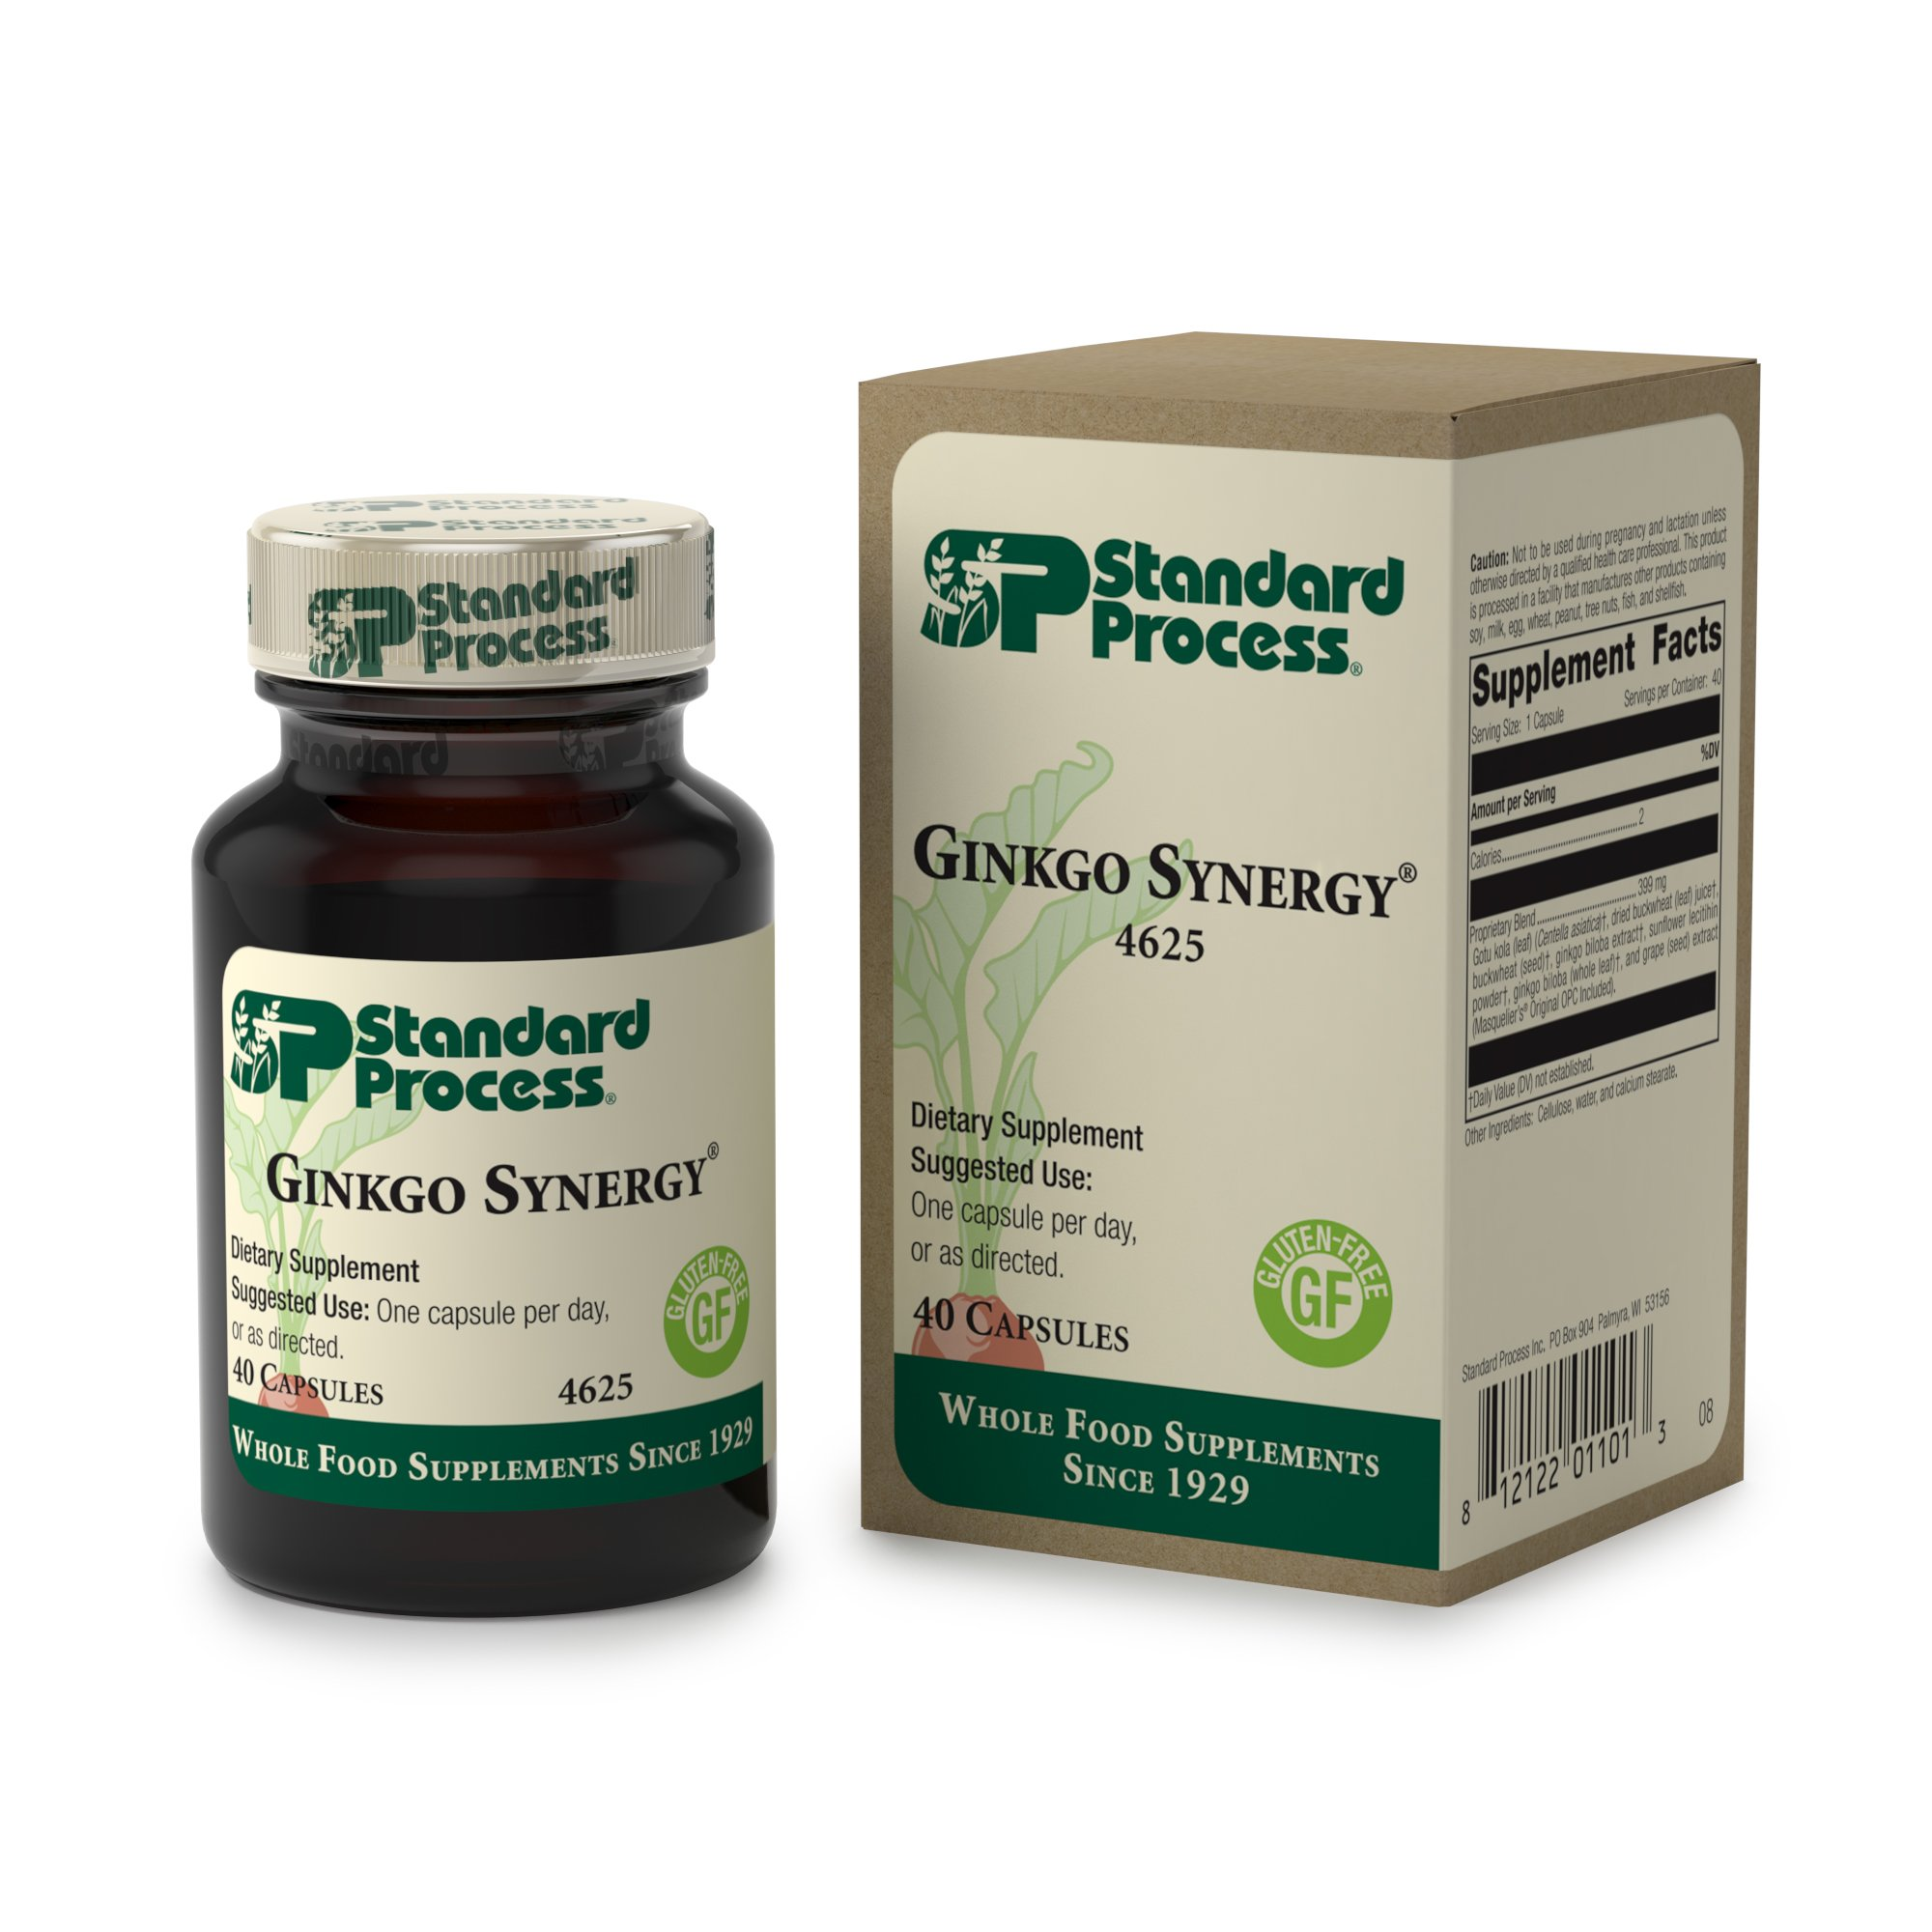 Standard Process - Ginkgo Synergy - Ginkgo Biloba Supplement, Supports Healthy Brain Function and Cognition, Promotes Antioxidant Activity, Gluten Free and - 40 Capsules